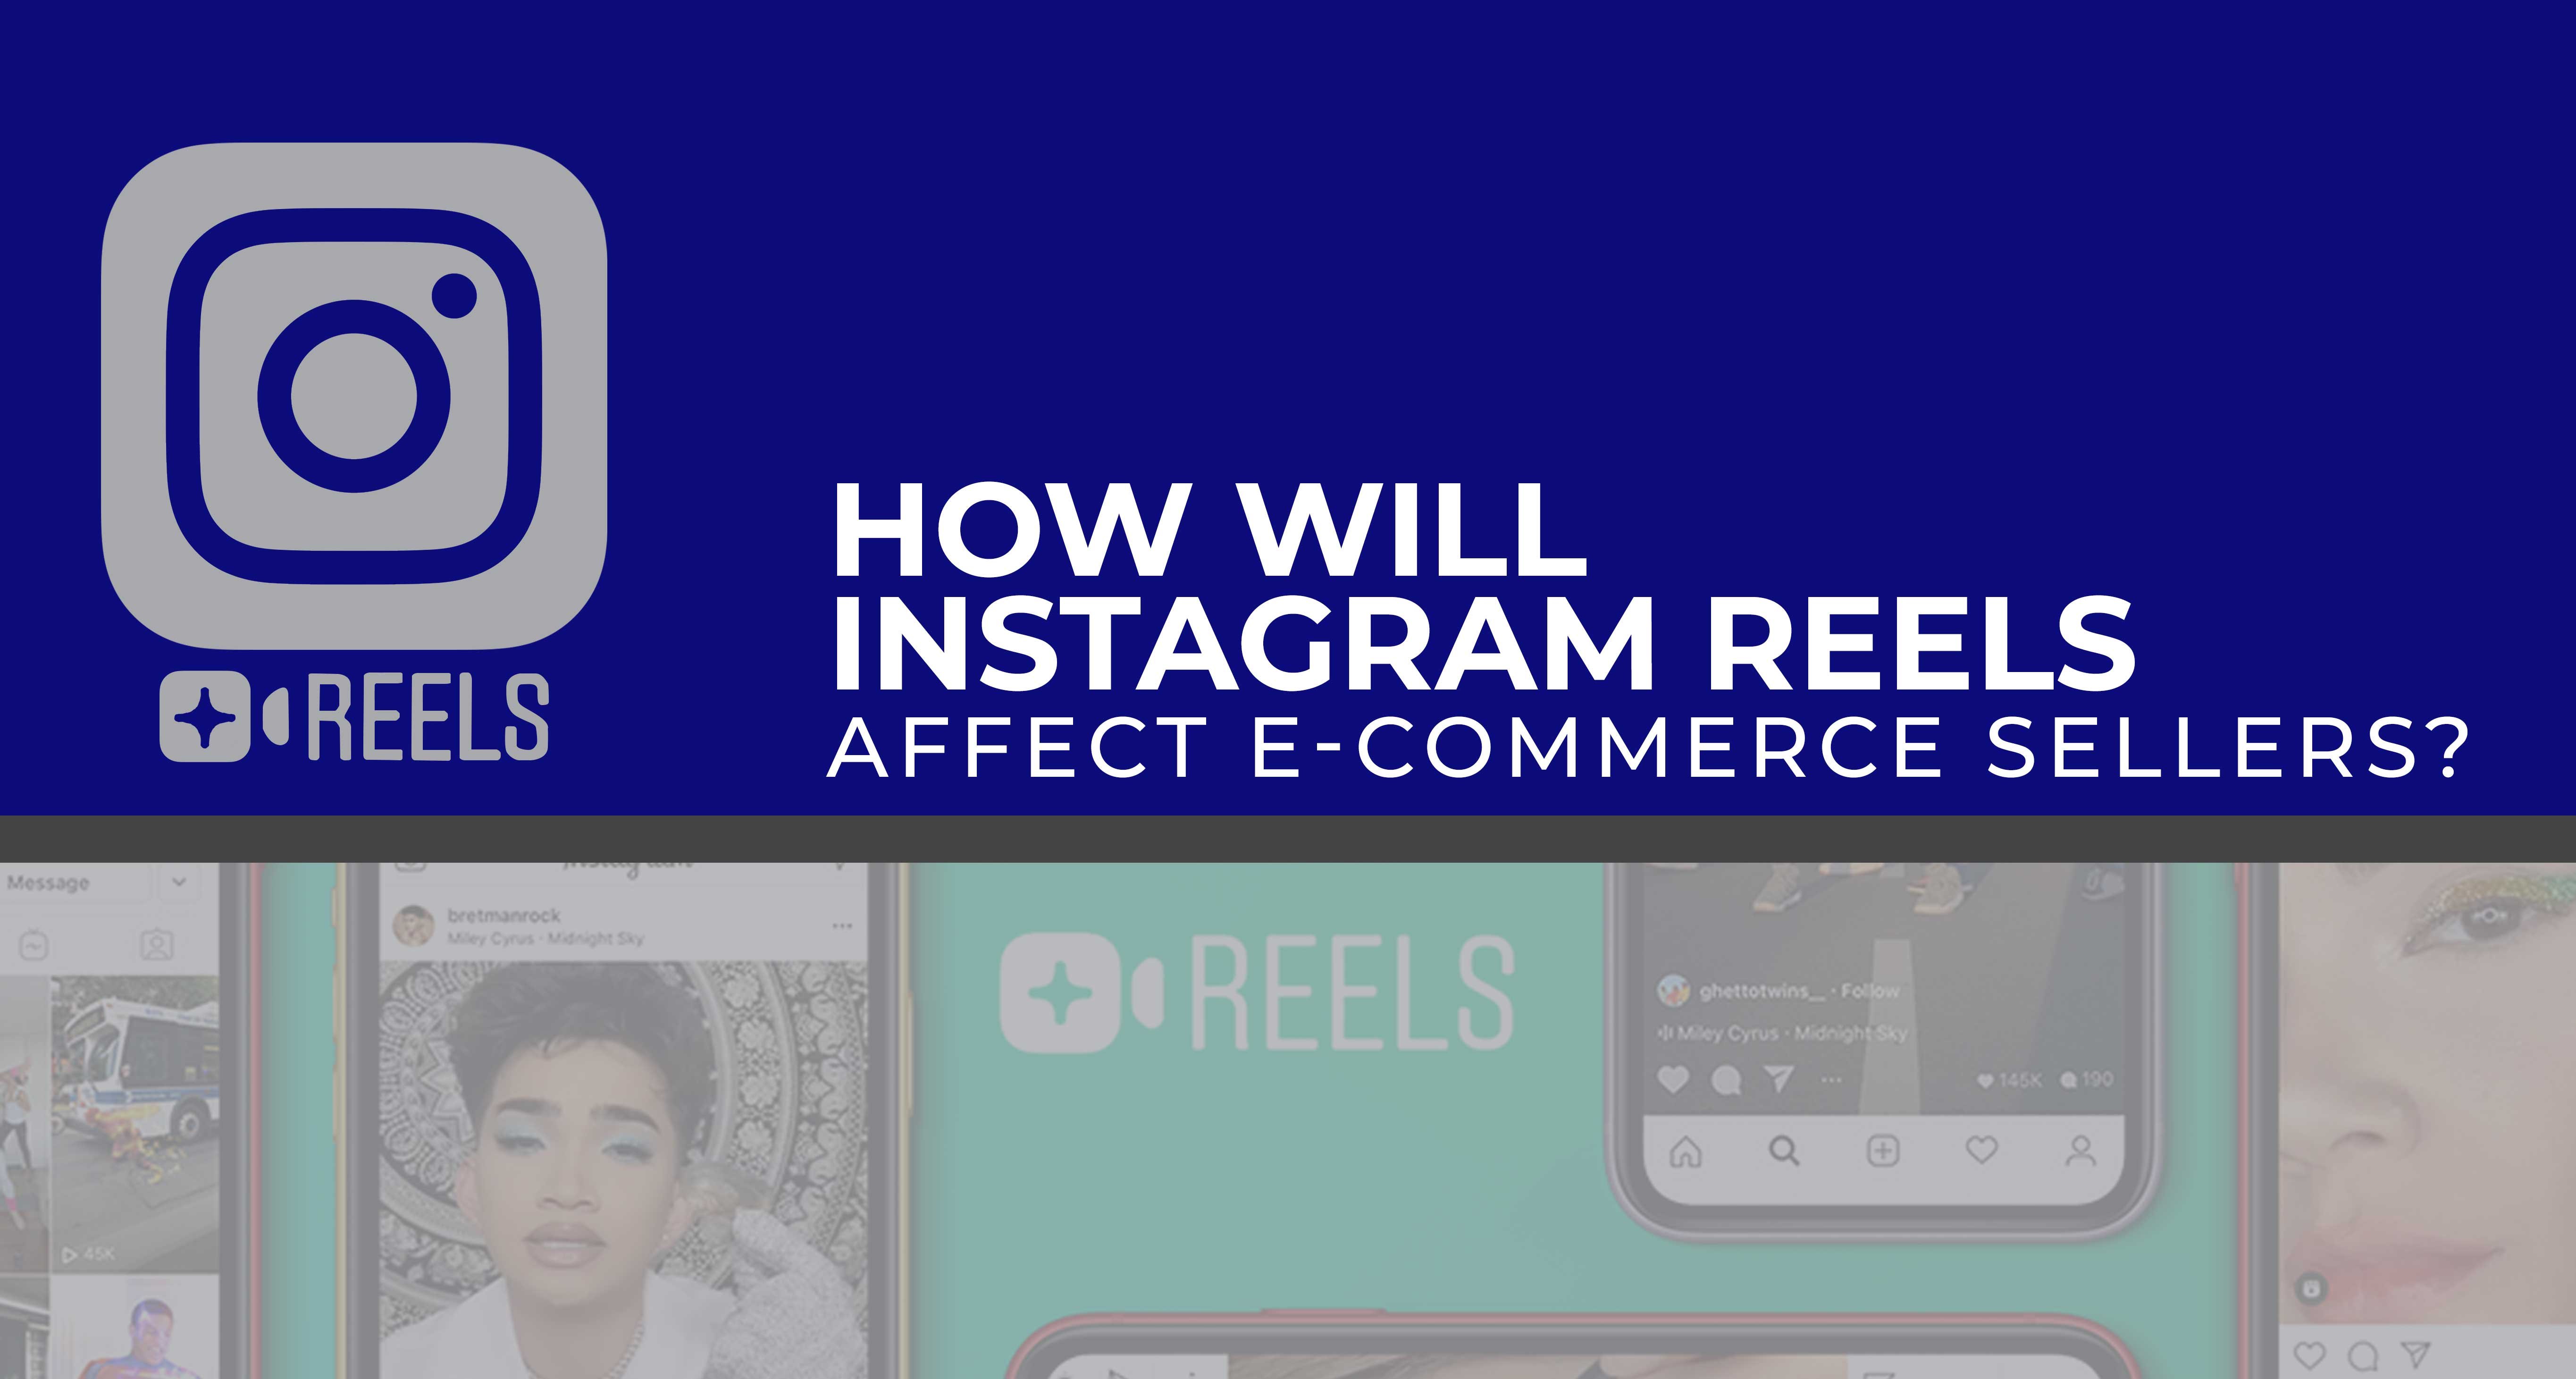 How Will Instagram Reels Affect E-commerce Sellers?